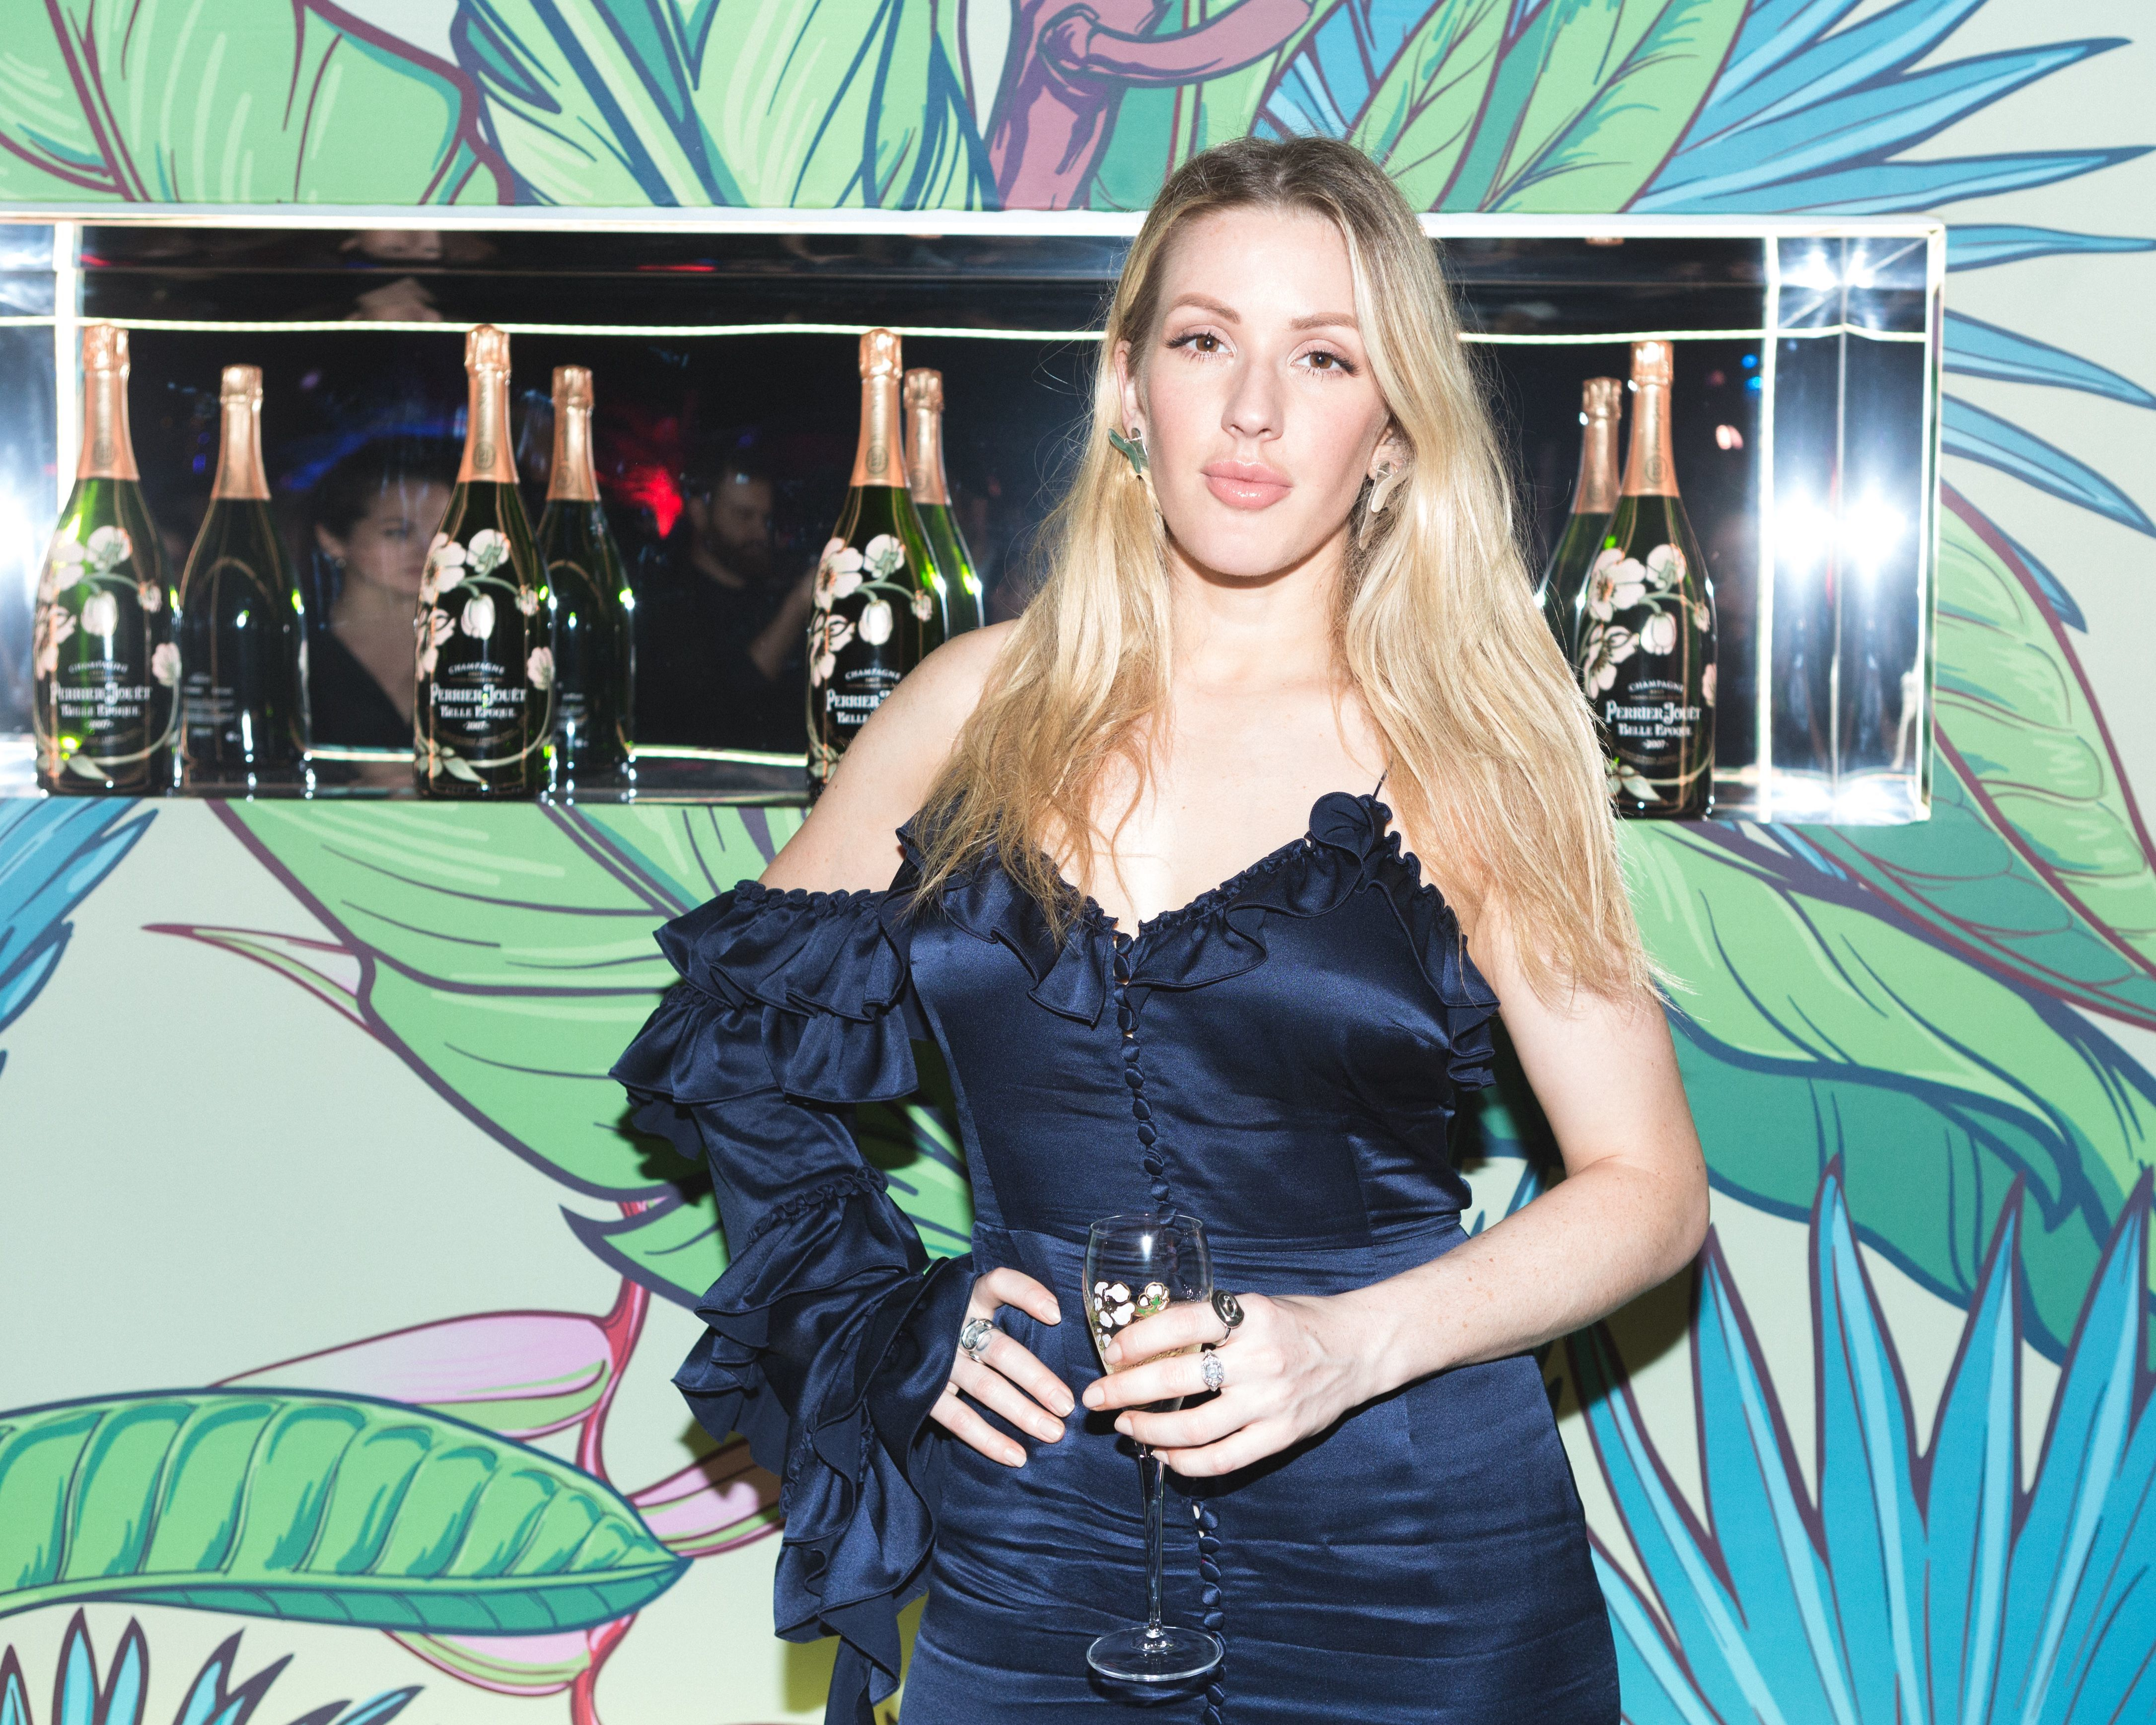 Ellie Goulding attends The Ball of Eden in Miami Beach on Dec. 7, 2017.